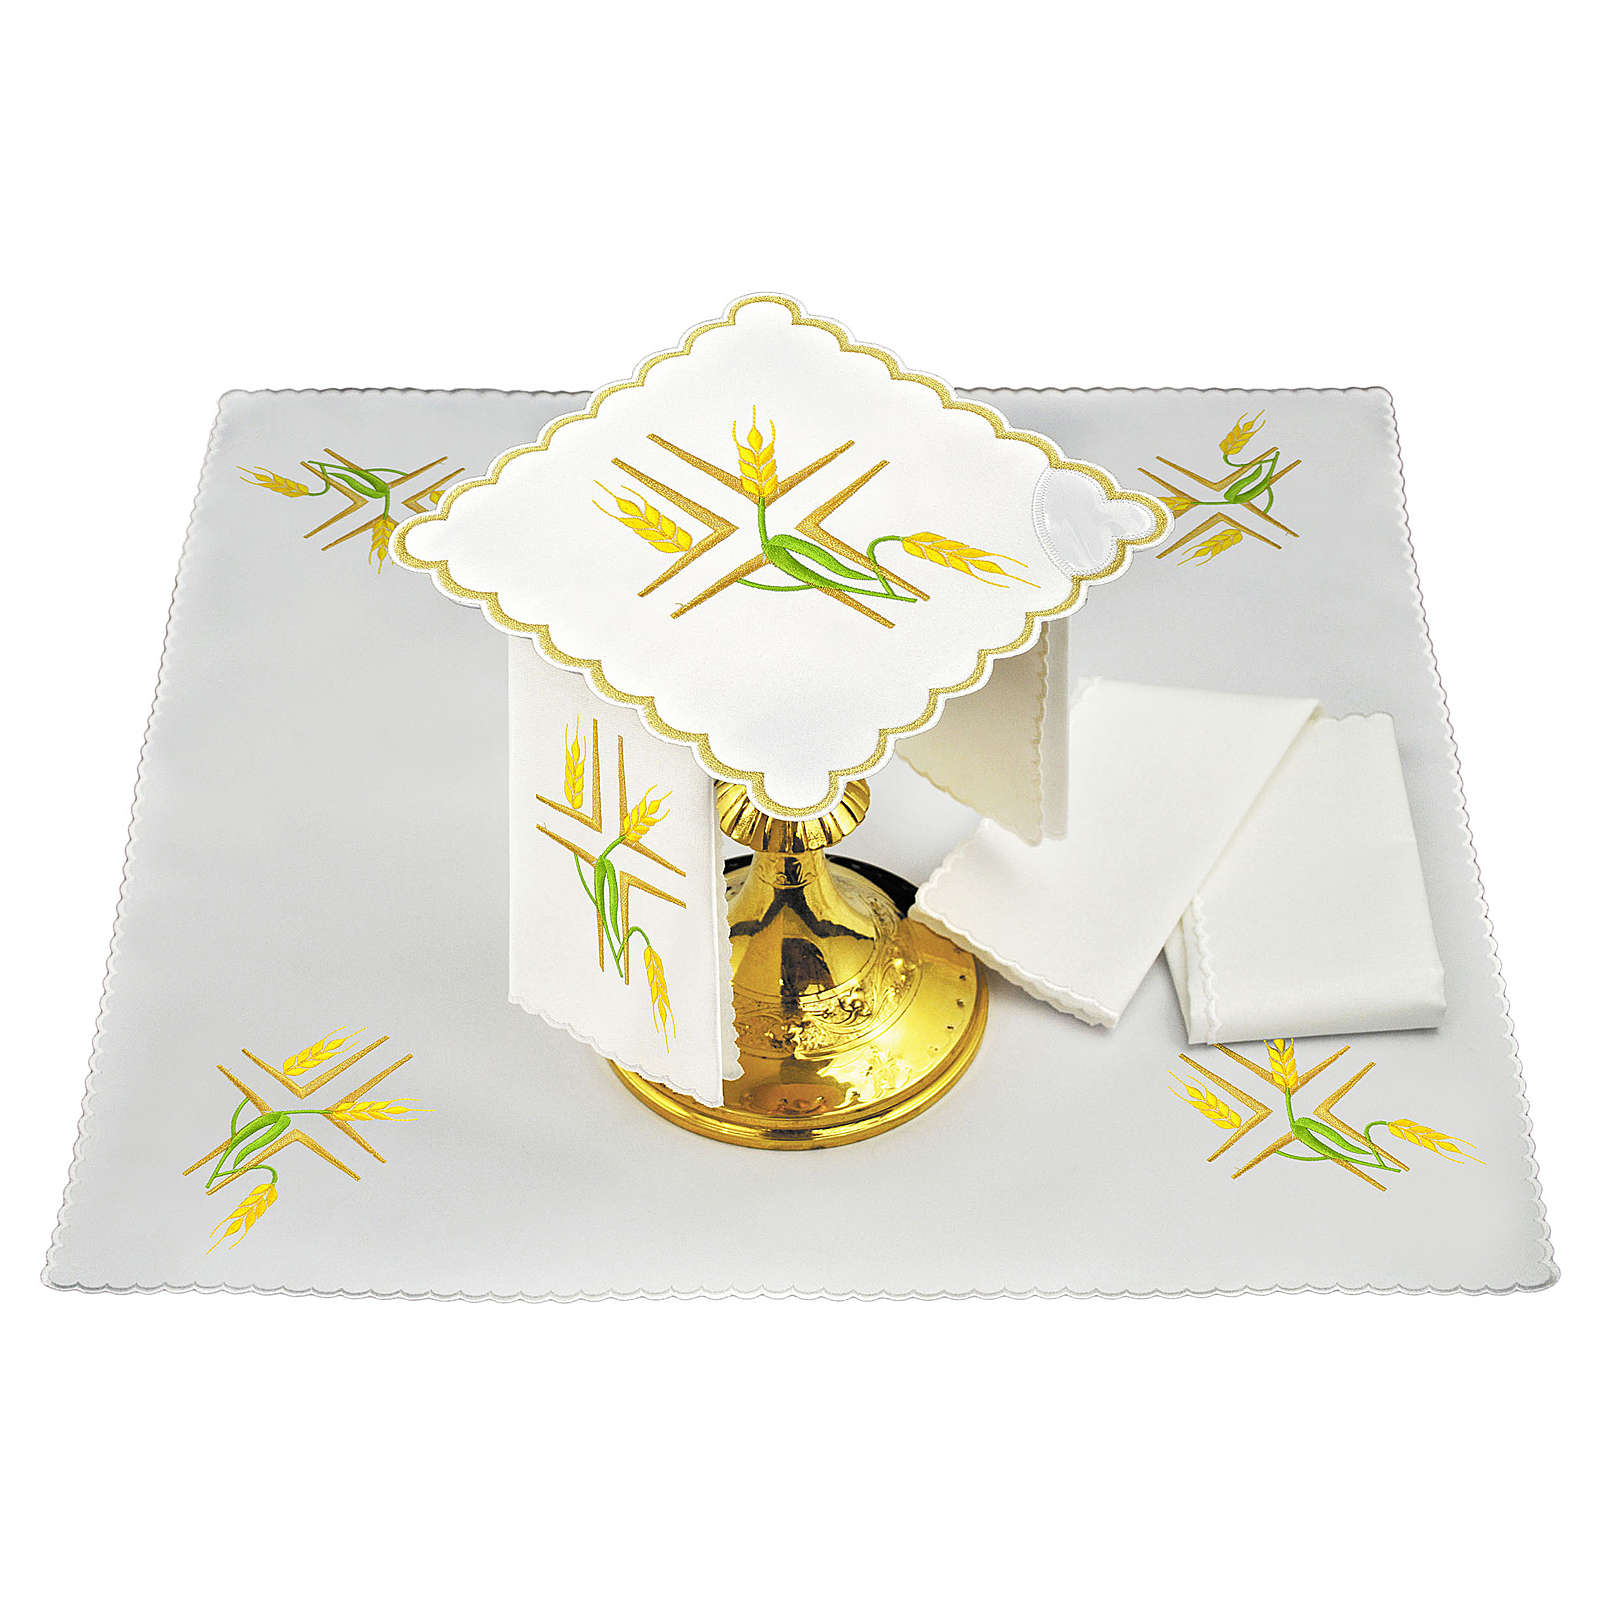 Altar linen yellow spikes and green stem 4